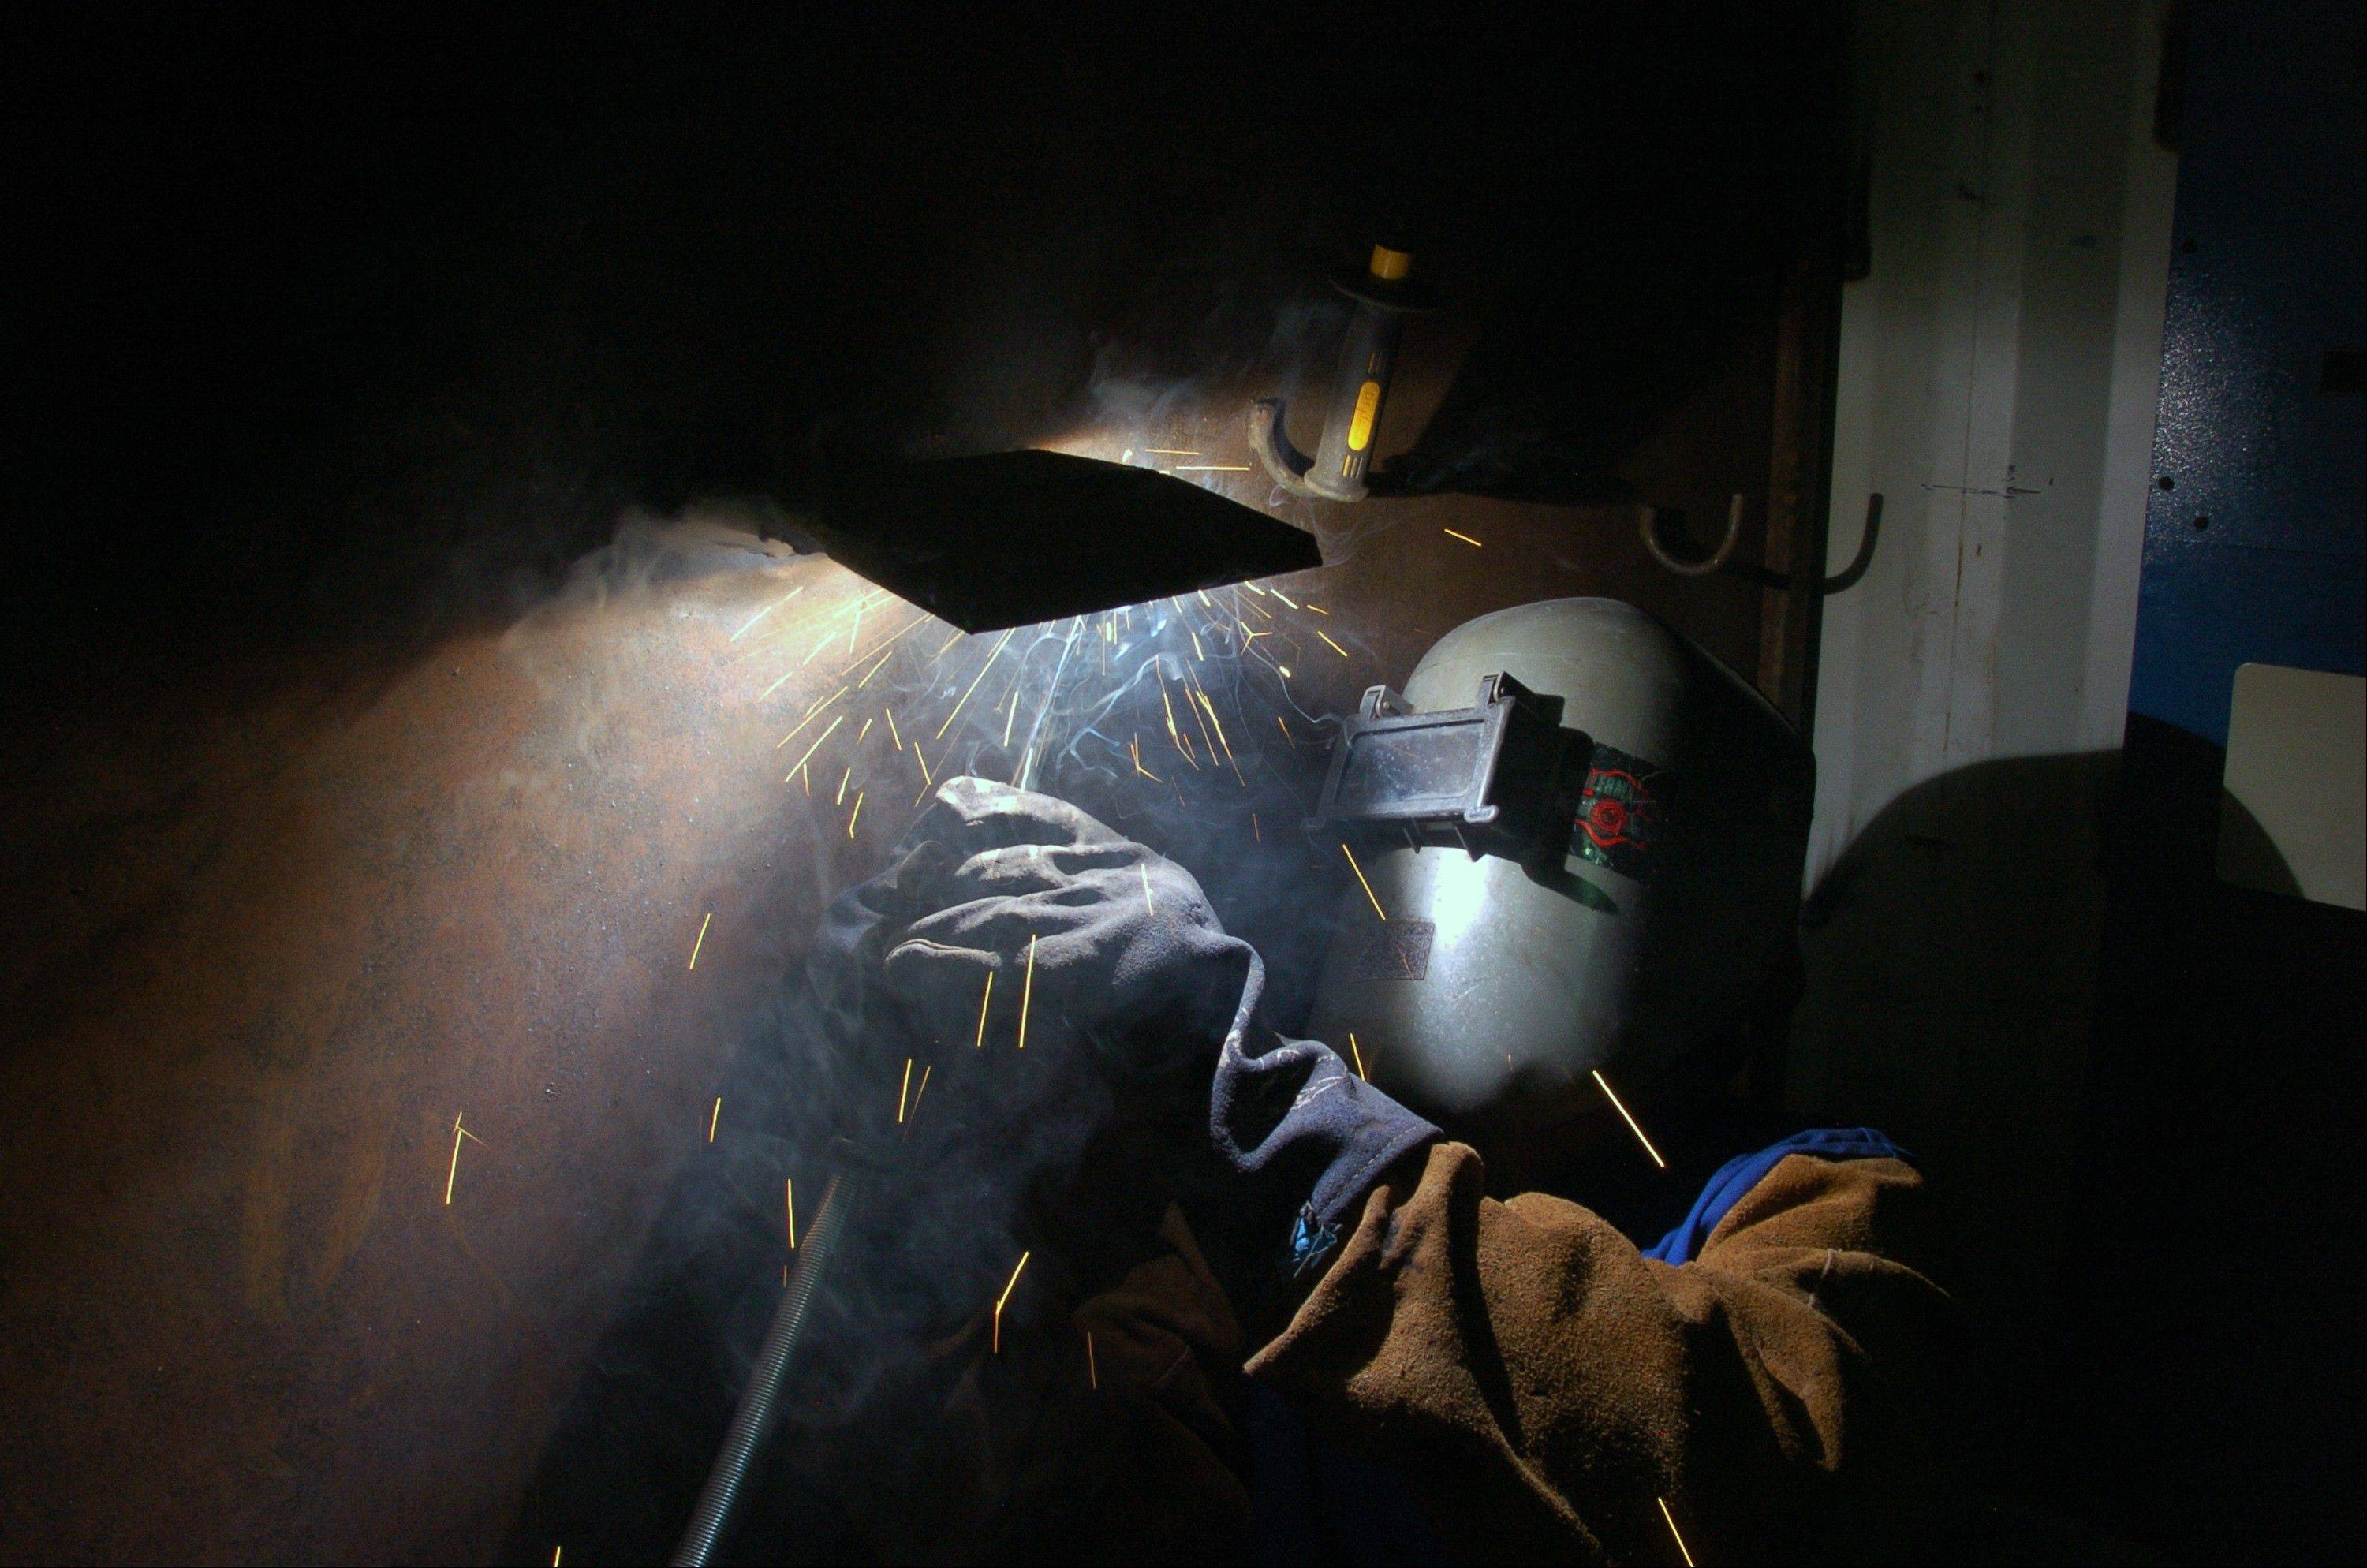 Josh Shomate, an apprentice with the Boilermakers union, works on a weld as part of his training to work at a coal-fired power plant Monday, July 1, 2013, in Colstrip, Mont. Shomate says he quit a job with the U.S. Forest Service to pursue a career in the coal industry.